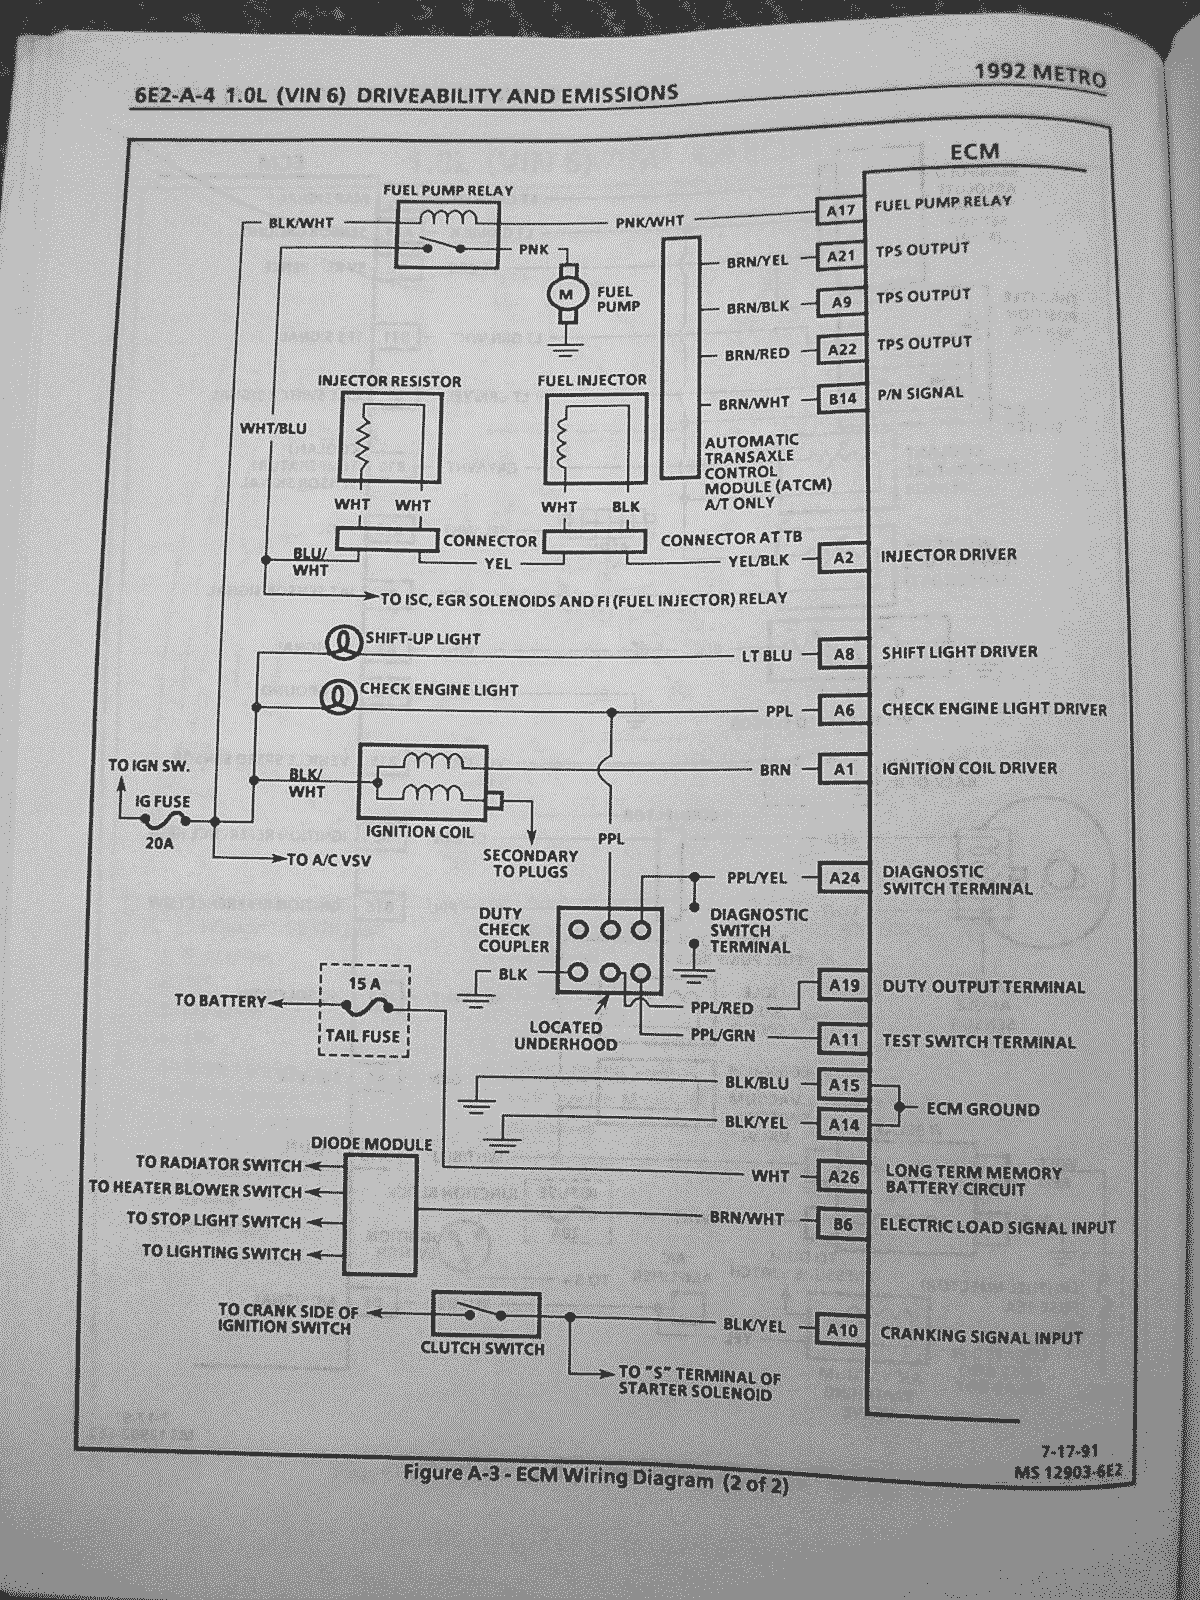 Geo Metro and Suzuki Swift Wiring Diagrams – MetroXFi.com on geo tracker wiring harness, honda element wiring harness, ford bronco wiring harness, isuzu axiom wiring harness, honda fit wiring harness, subaru forester wiring harness, kia spectra wiring harness, geo metro headlight wiring, chevy aveo wiring harness, buick skylark wiring harness, pontiac g6 wiring harness, toyota pickup wiring harness, chevy cobalt wiring harness, pontiac bonneville wiring harness, chrysler pacifica wiring harness, ford mustang wiring harness, pontiac sunfire wiring harness, geo metro radio wiring diagram, cadillac eldorado wiring harness, volkswagen type 3 wiring harness,